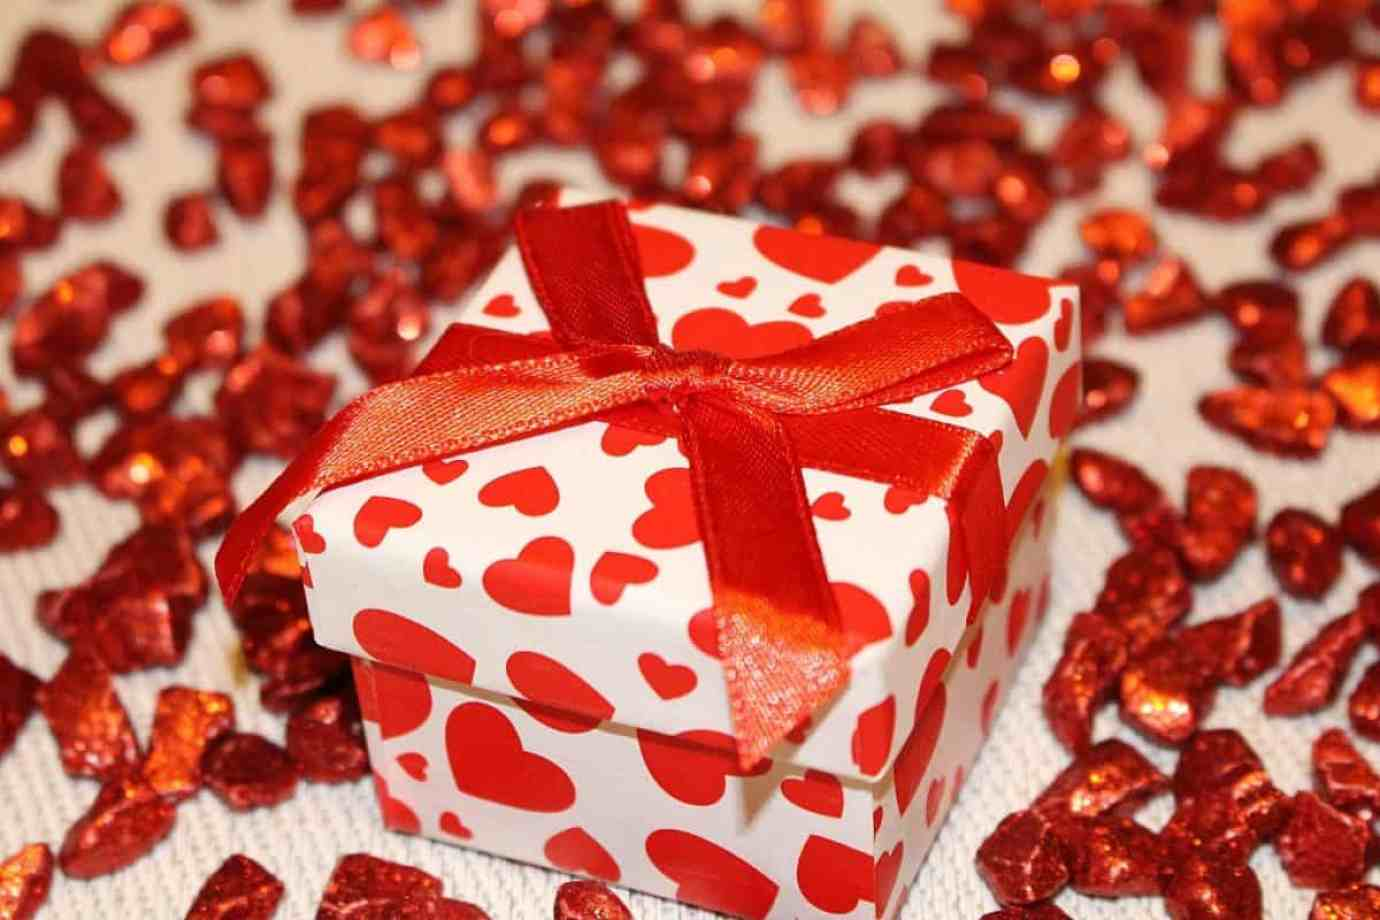 5 Questions to Ask Yourself Before Choosing a Gift